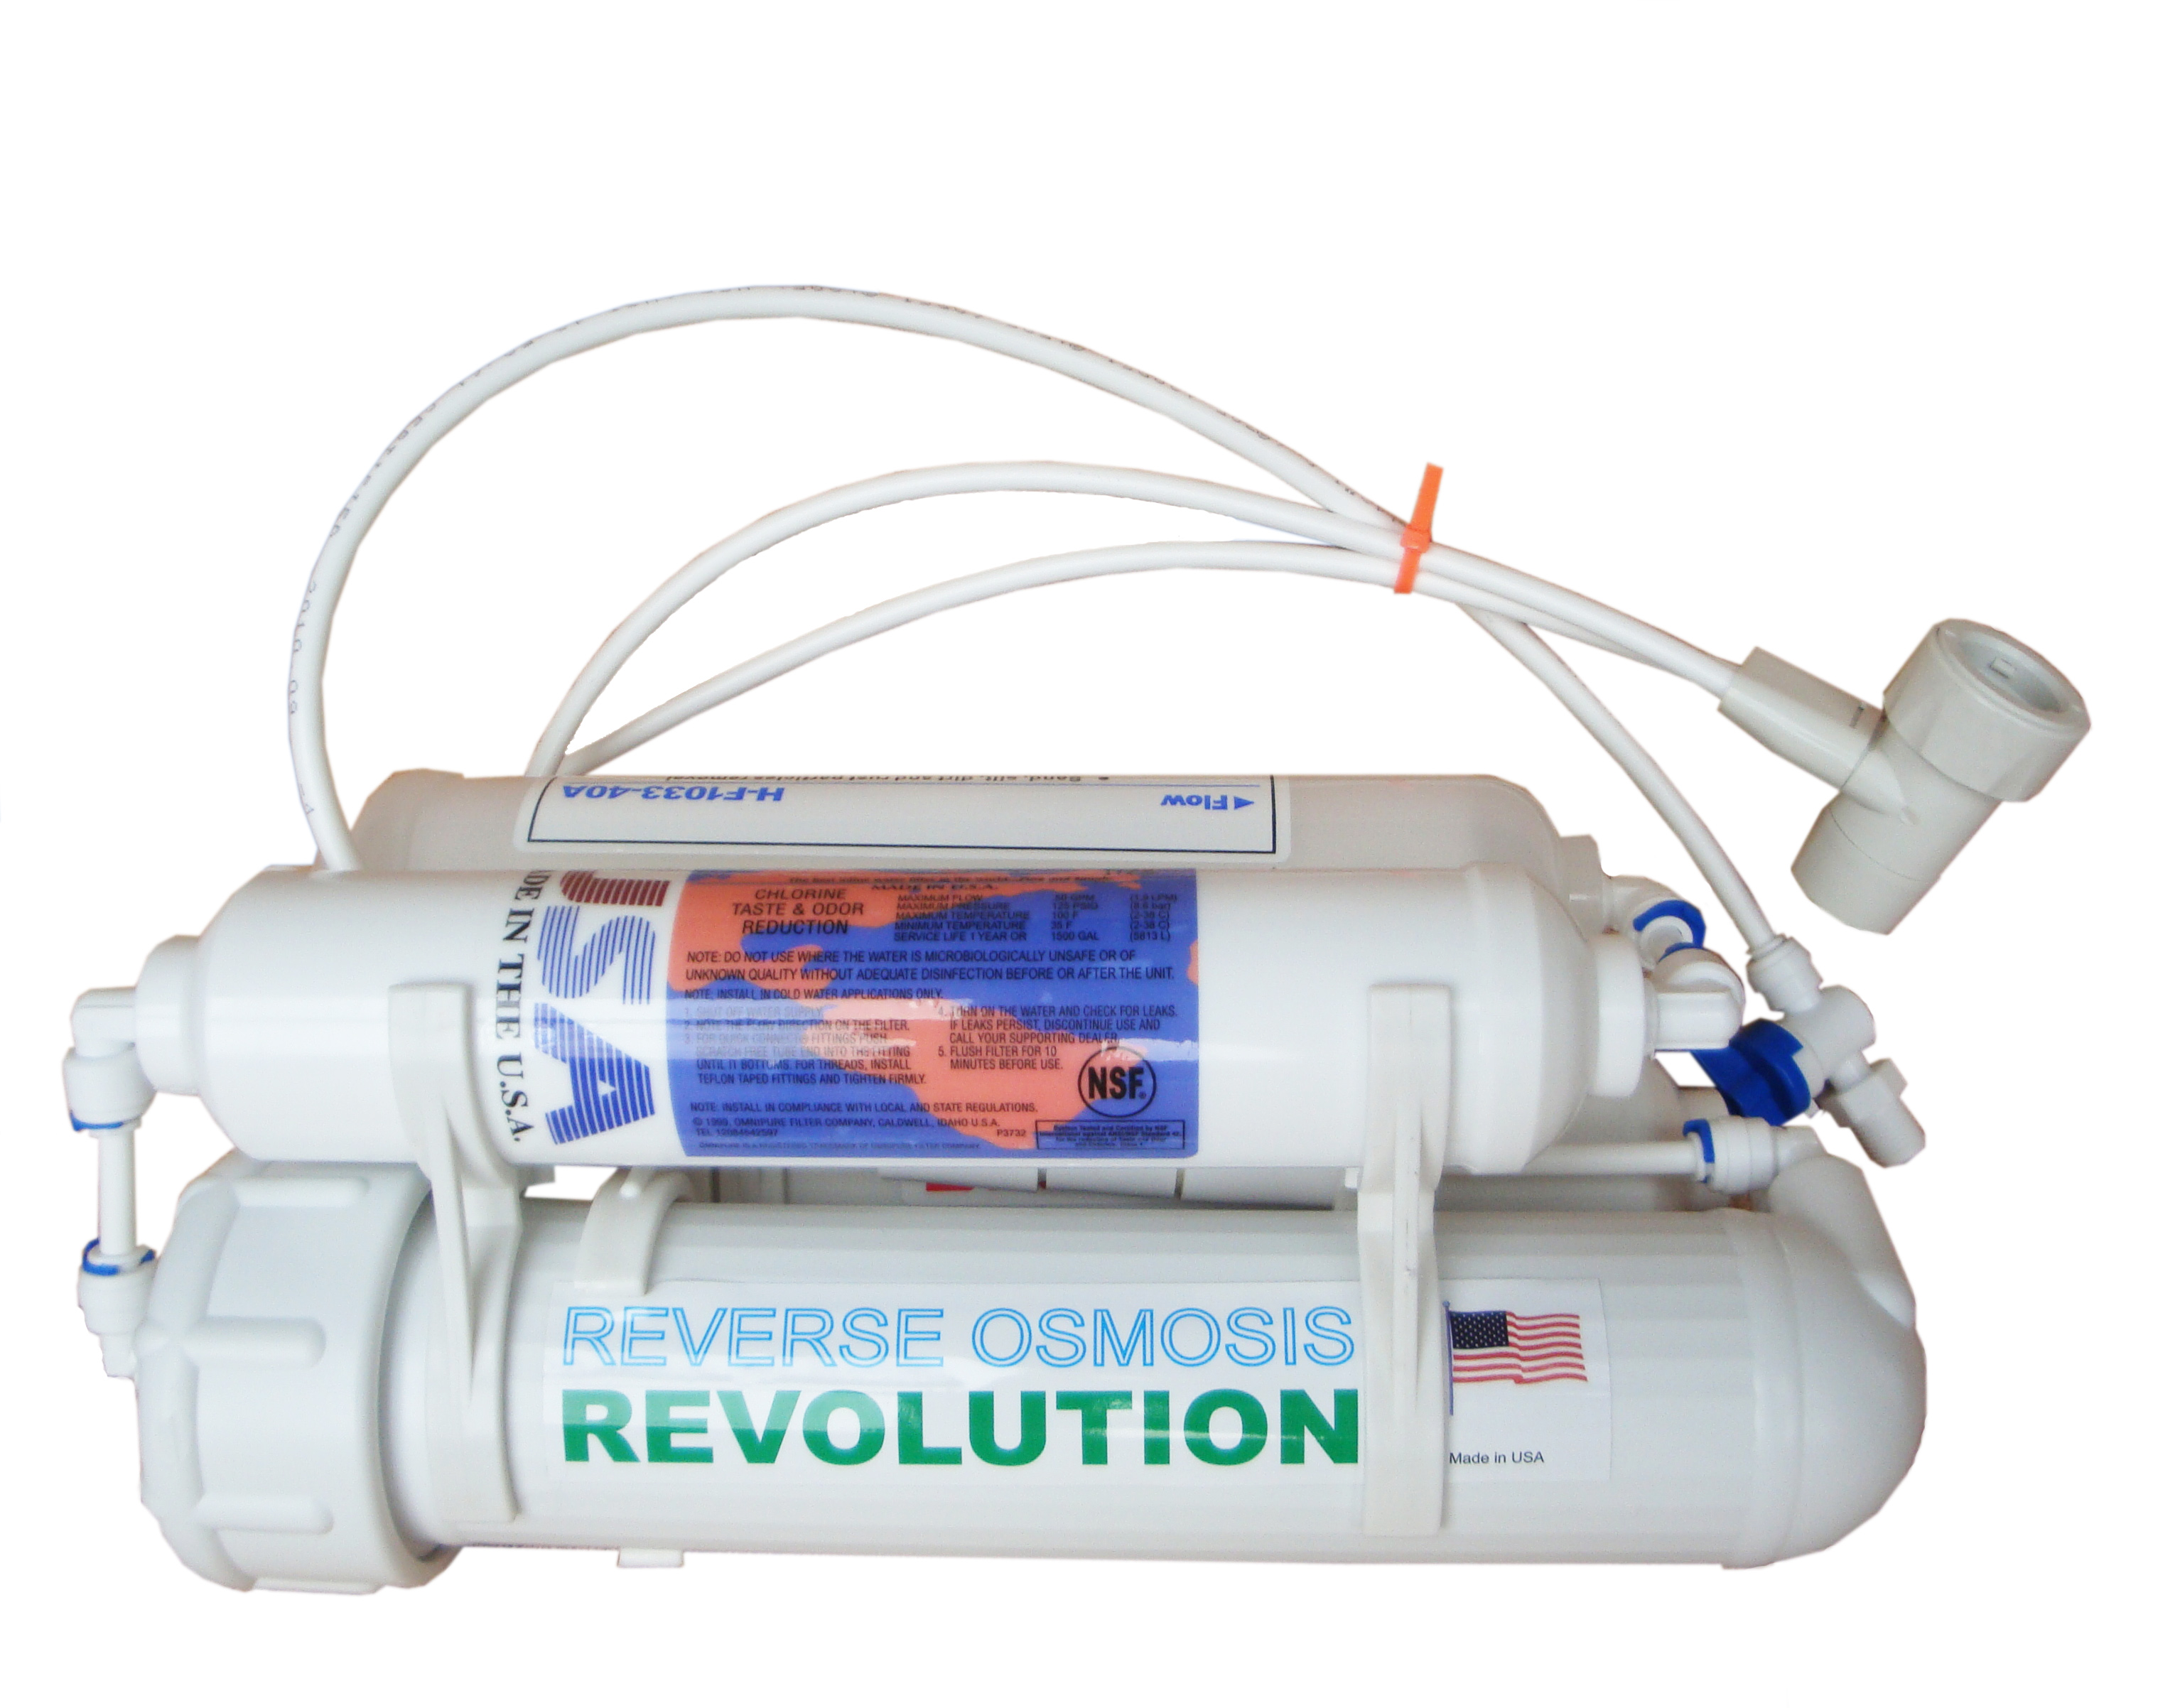 4 Stage Reverse Osmosis Revolution Water Purification